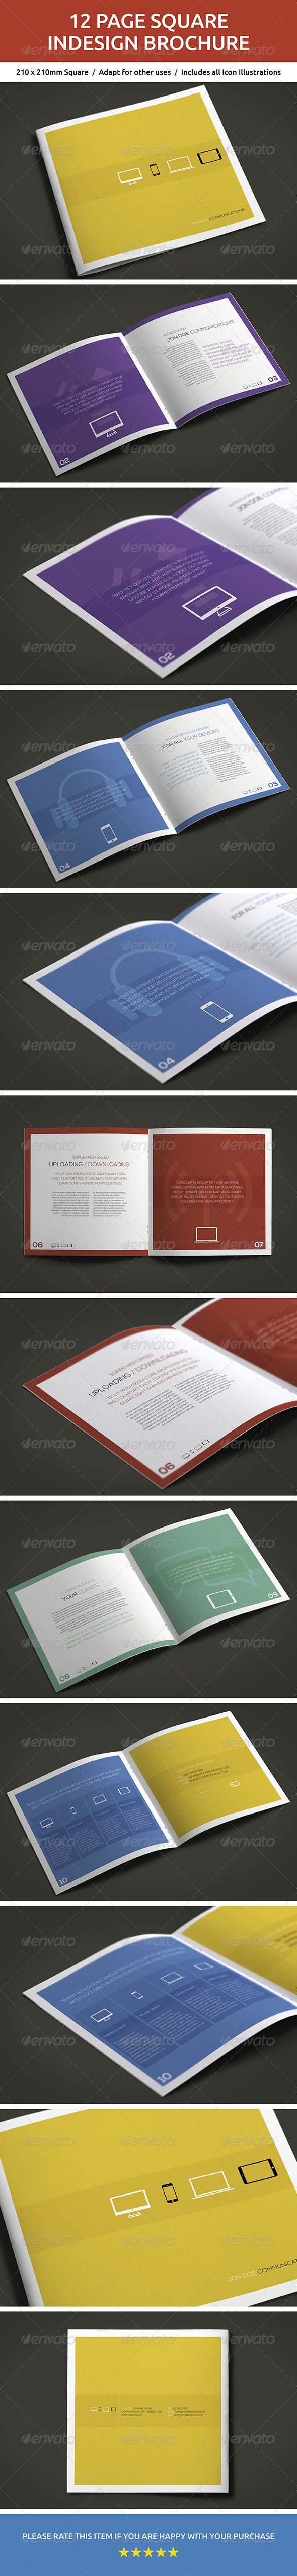 12 Page Square InDesign Brochure - Brochures Print Templates